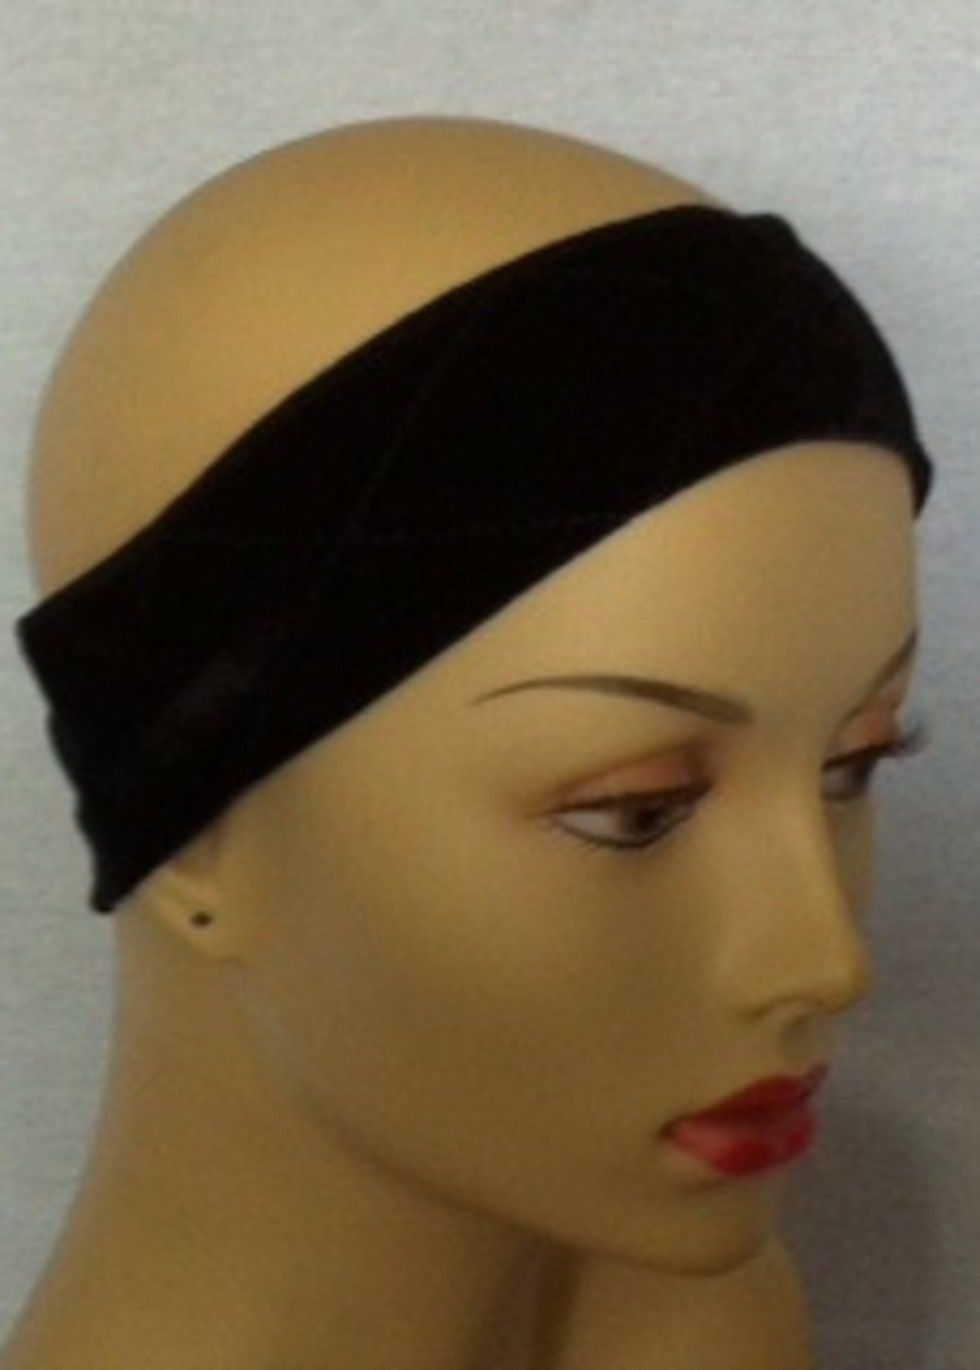 non-slip headband    10usd   to keep fine hairs in place under wigs    tichels   adjustable velcro fastening 60d4dbdfa70